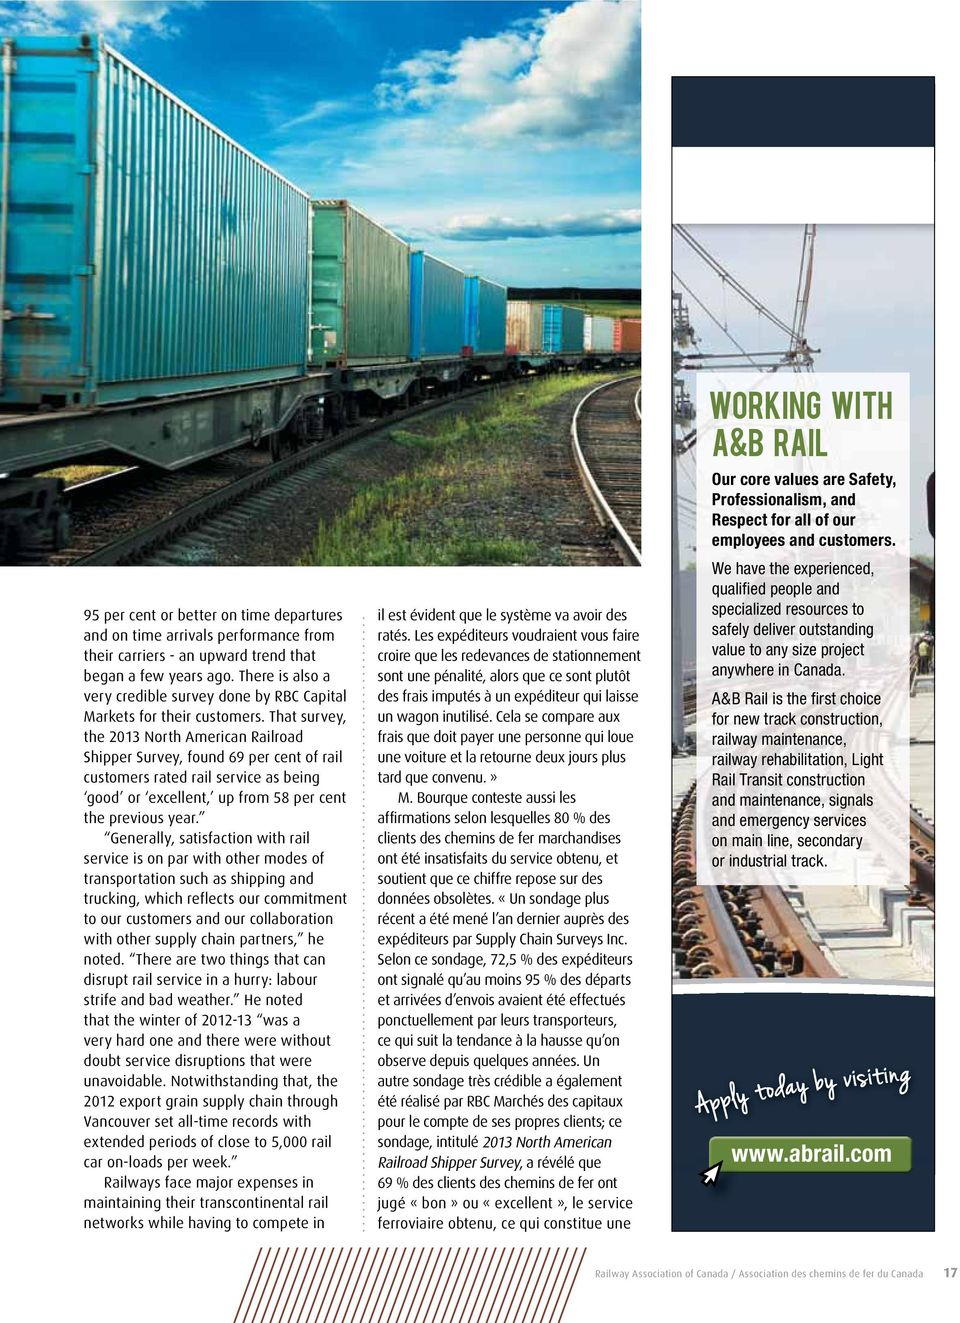 That survey, the 2013 North American Railroad Shipper Survey, found 69 per cent of rail customers rated rail service as being good or excellent, up from 58 per cent the previous year.